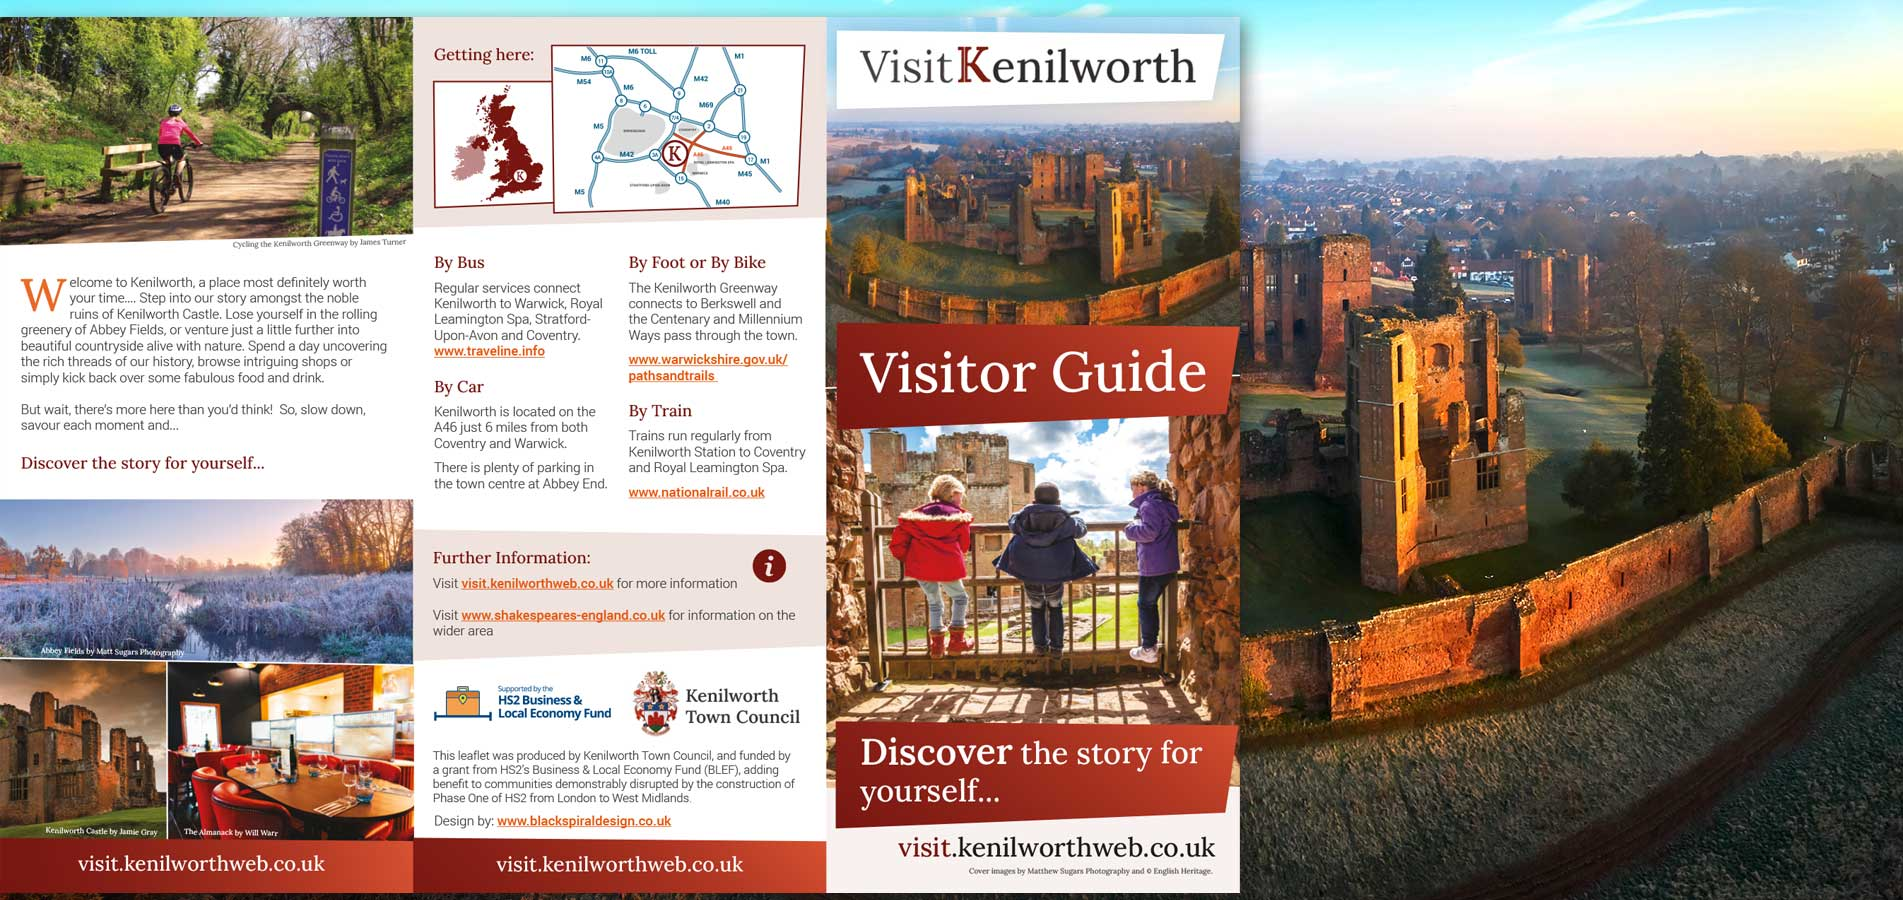 New Visit Kenilworth Visitor Guide is out